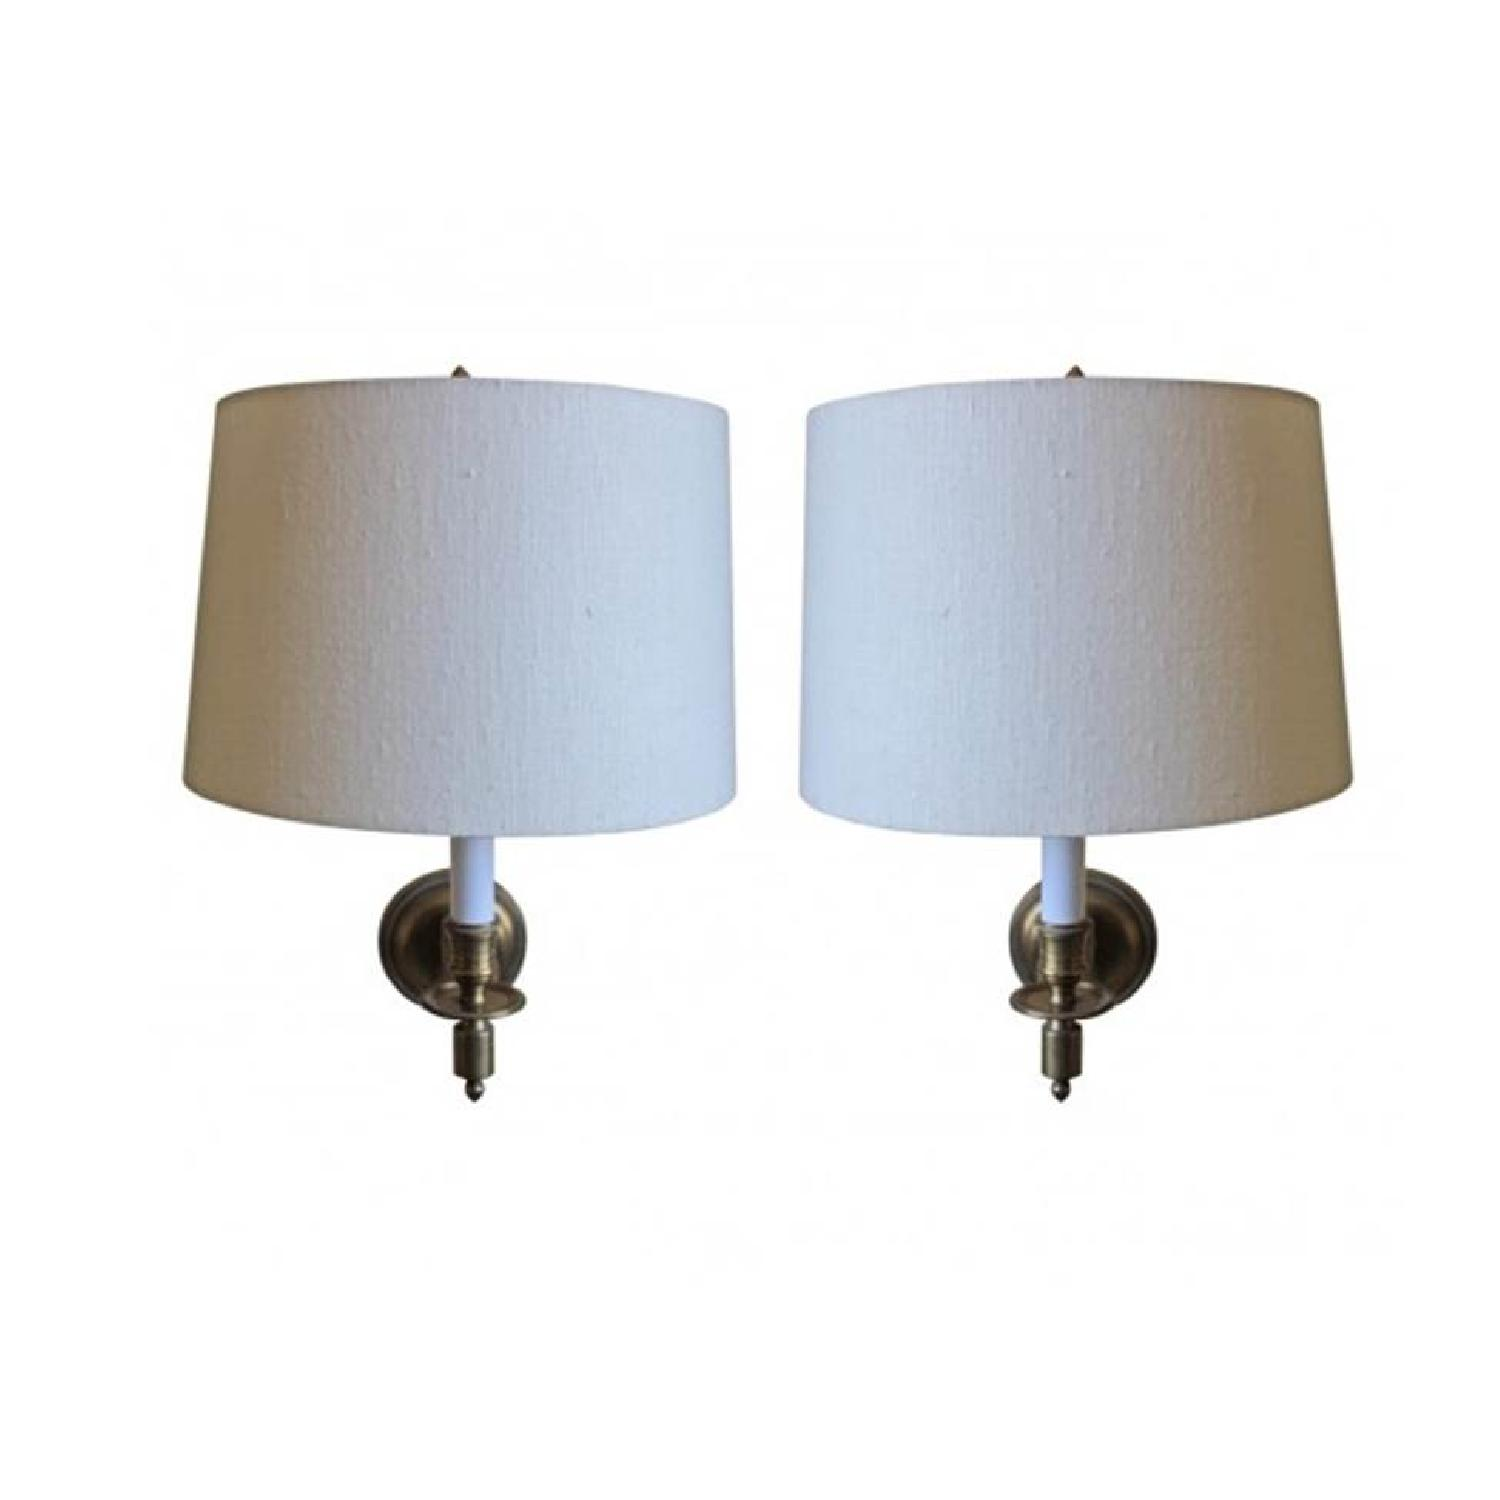 Visual Comfort Brass Swing Arm Wall Lamps - Pair